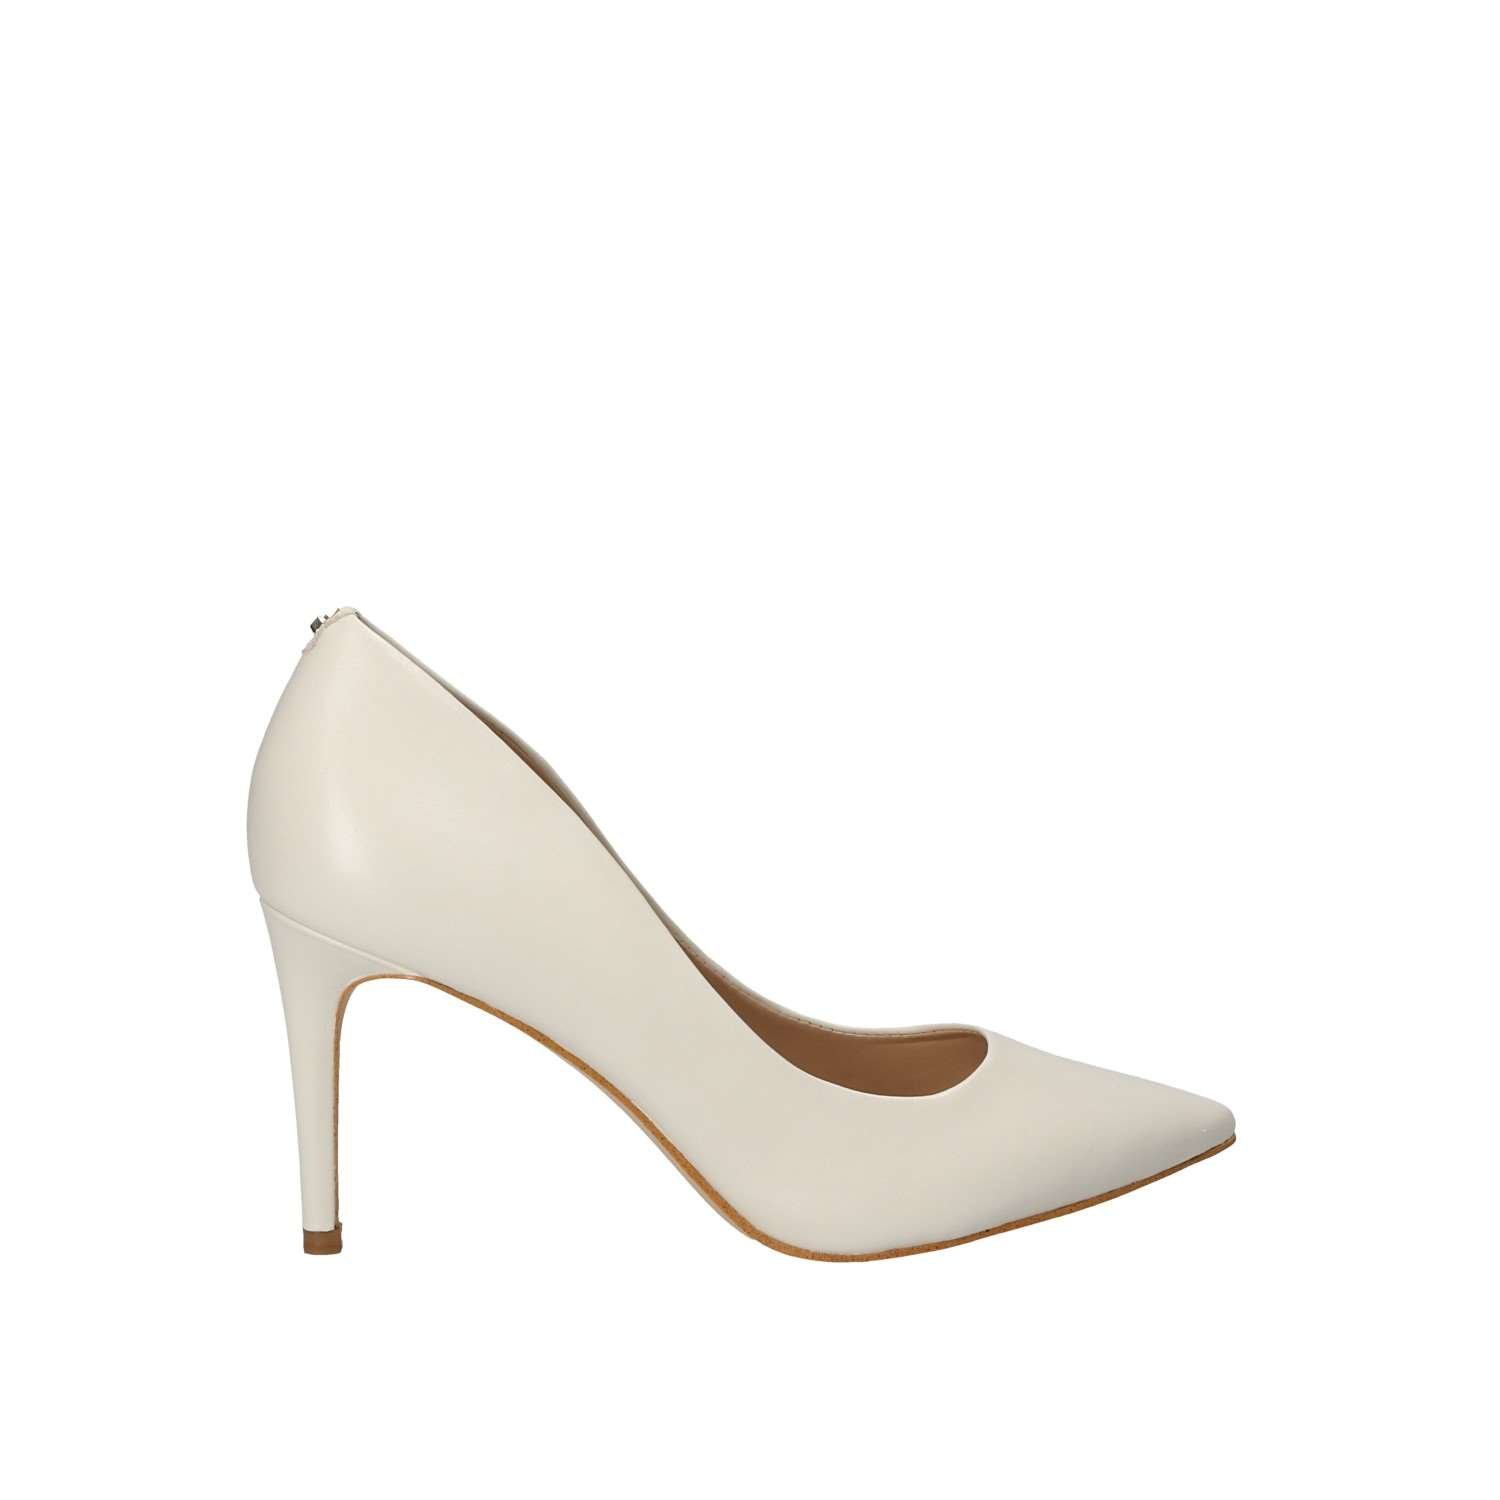 Guess SCARPE DONNA DECOLLETE TC 85 MOD. BENNIE PELLE COLORE CREAM (BIANCO) DS18GU09  Cream